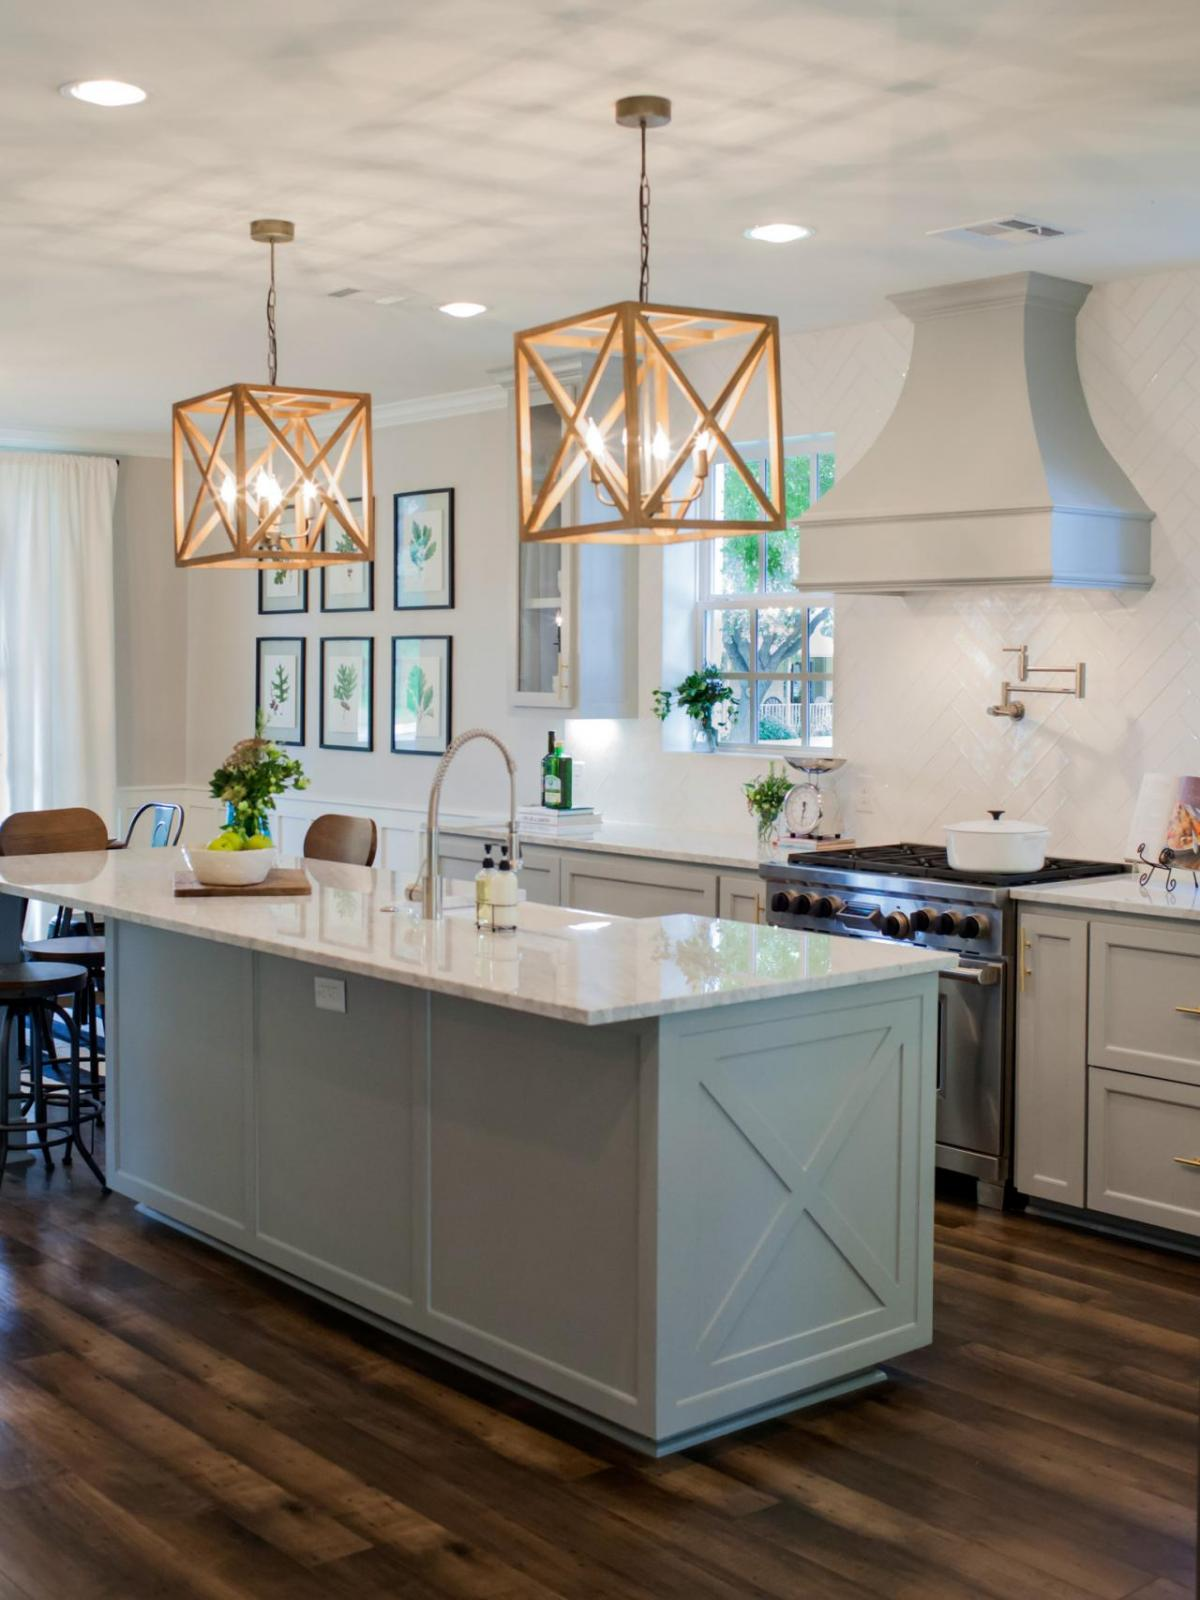 kitchen lighting island selecting kitchen island lighting that fits your needs and style 4615